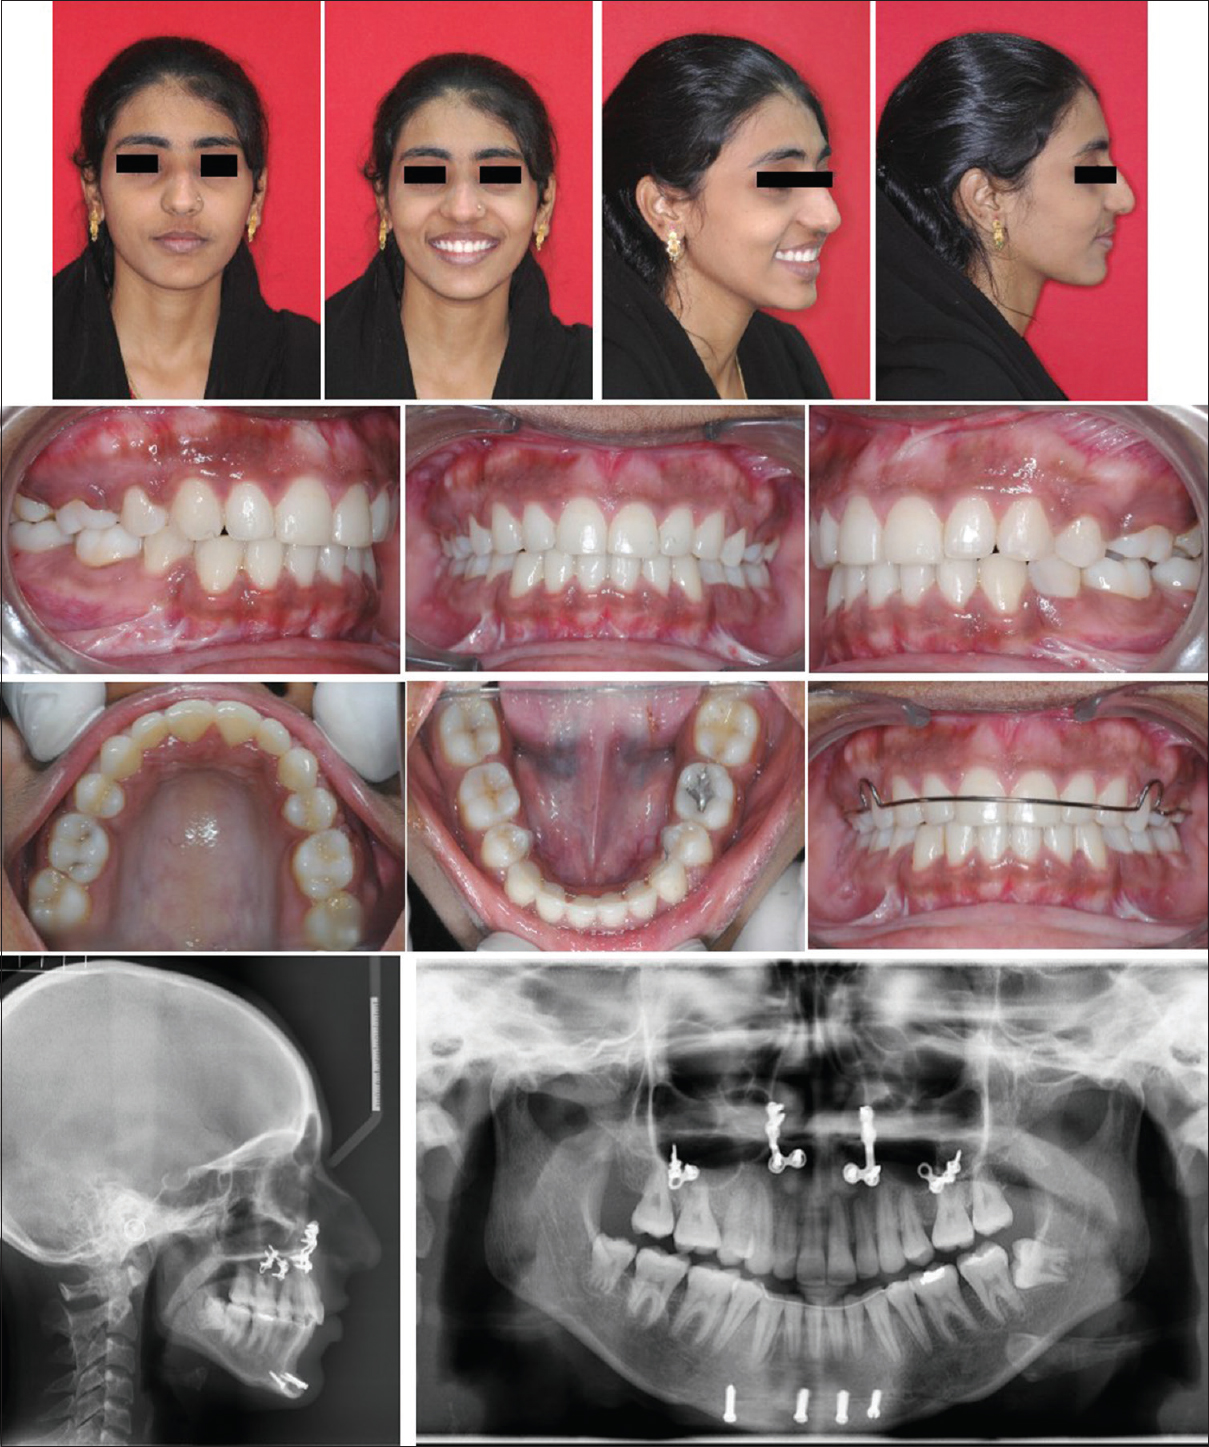 Surgical management of hyperdivergent Class II malocclusion with